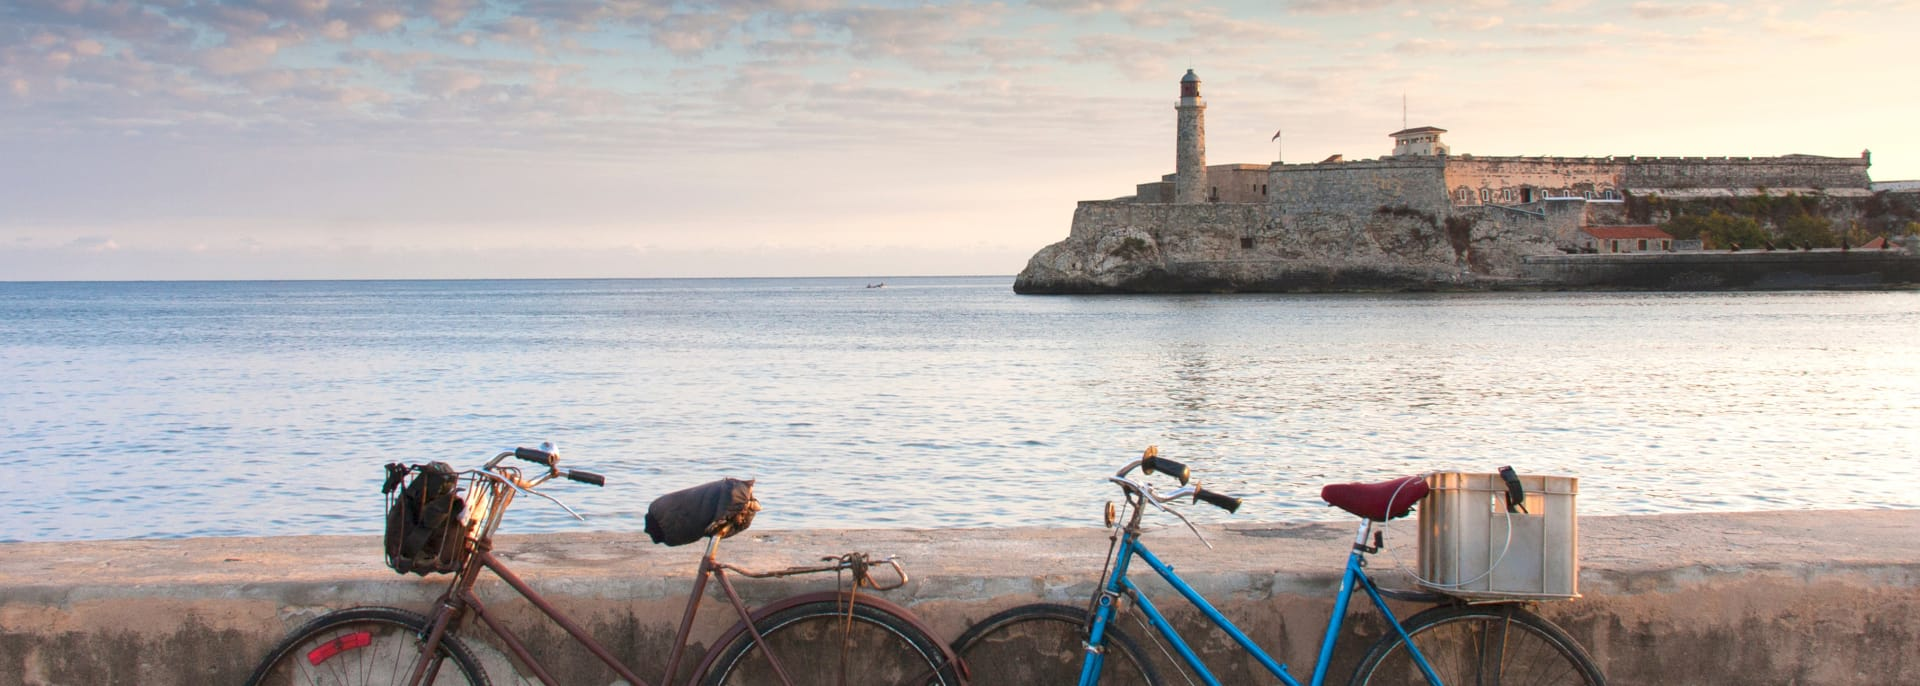 Bicycle ride with views of the Tres Reyes del Morro Castle